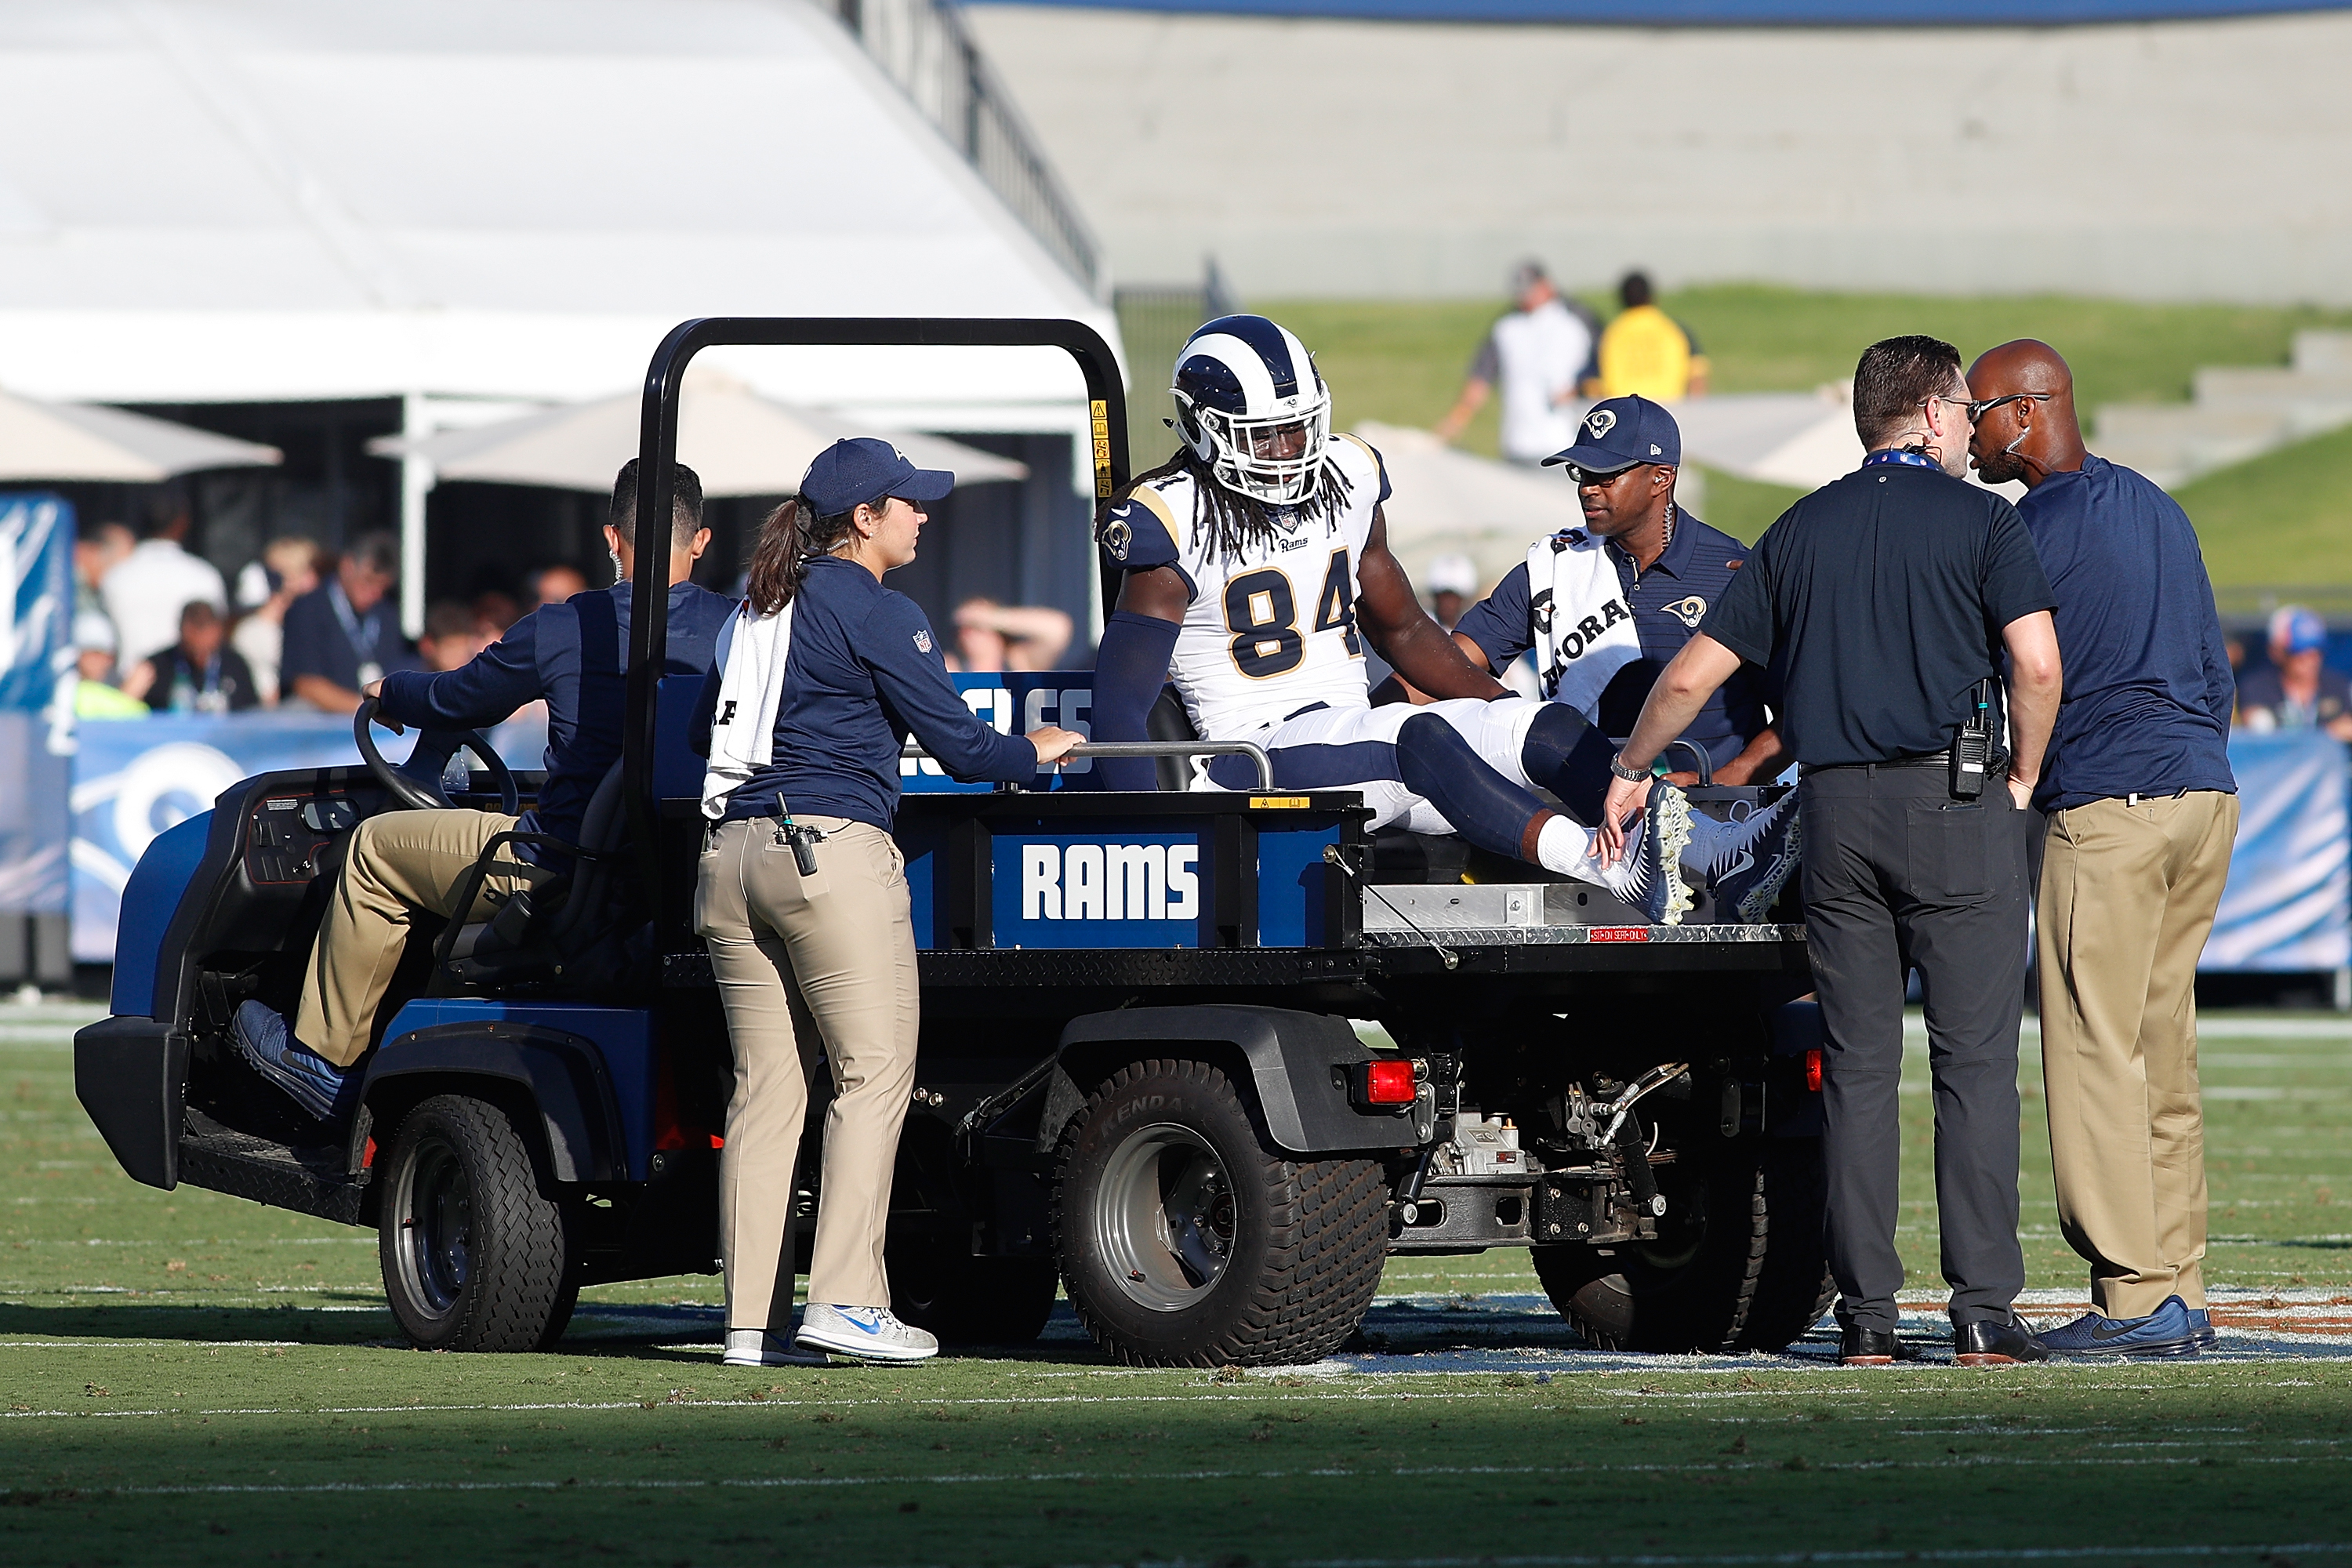 Los Angeles Rams TE Temarrick Hemingway leaves the game with an injury during the preseason game between the Rams and Los Angeles Chargers